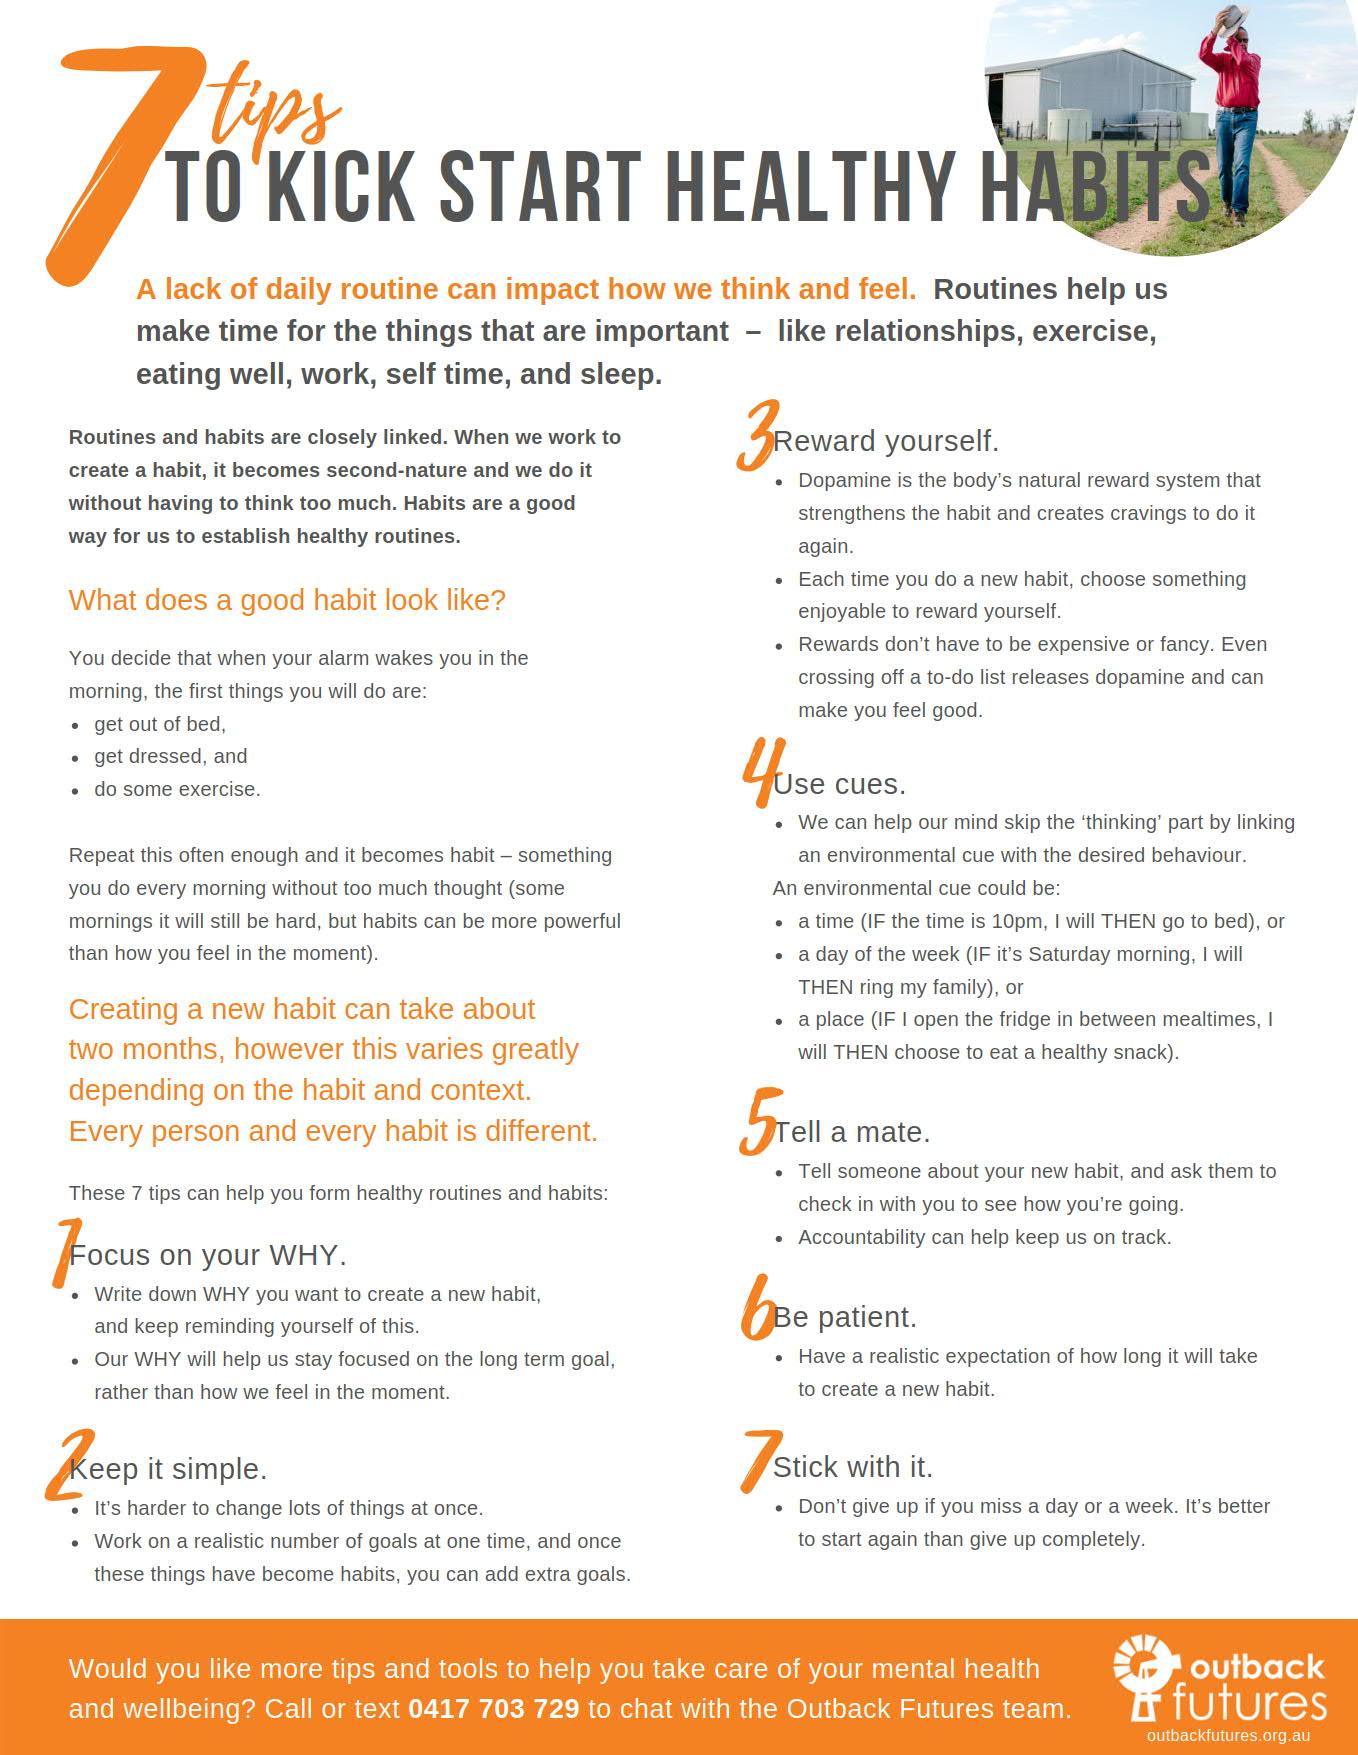 Outback Futures - 7 tips to kick start healthy habits